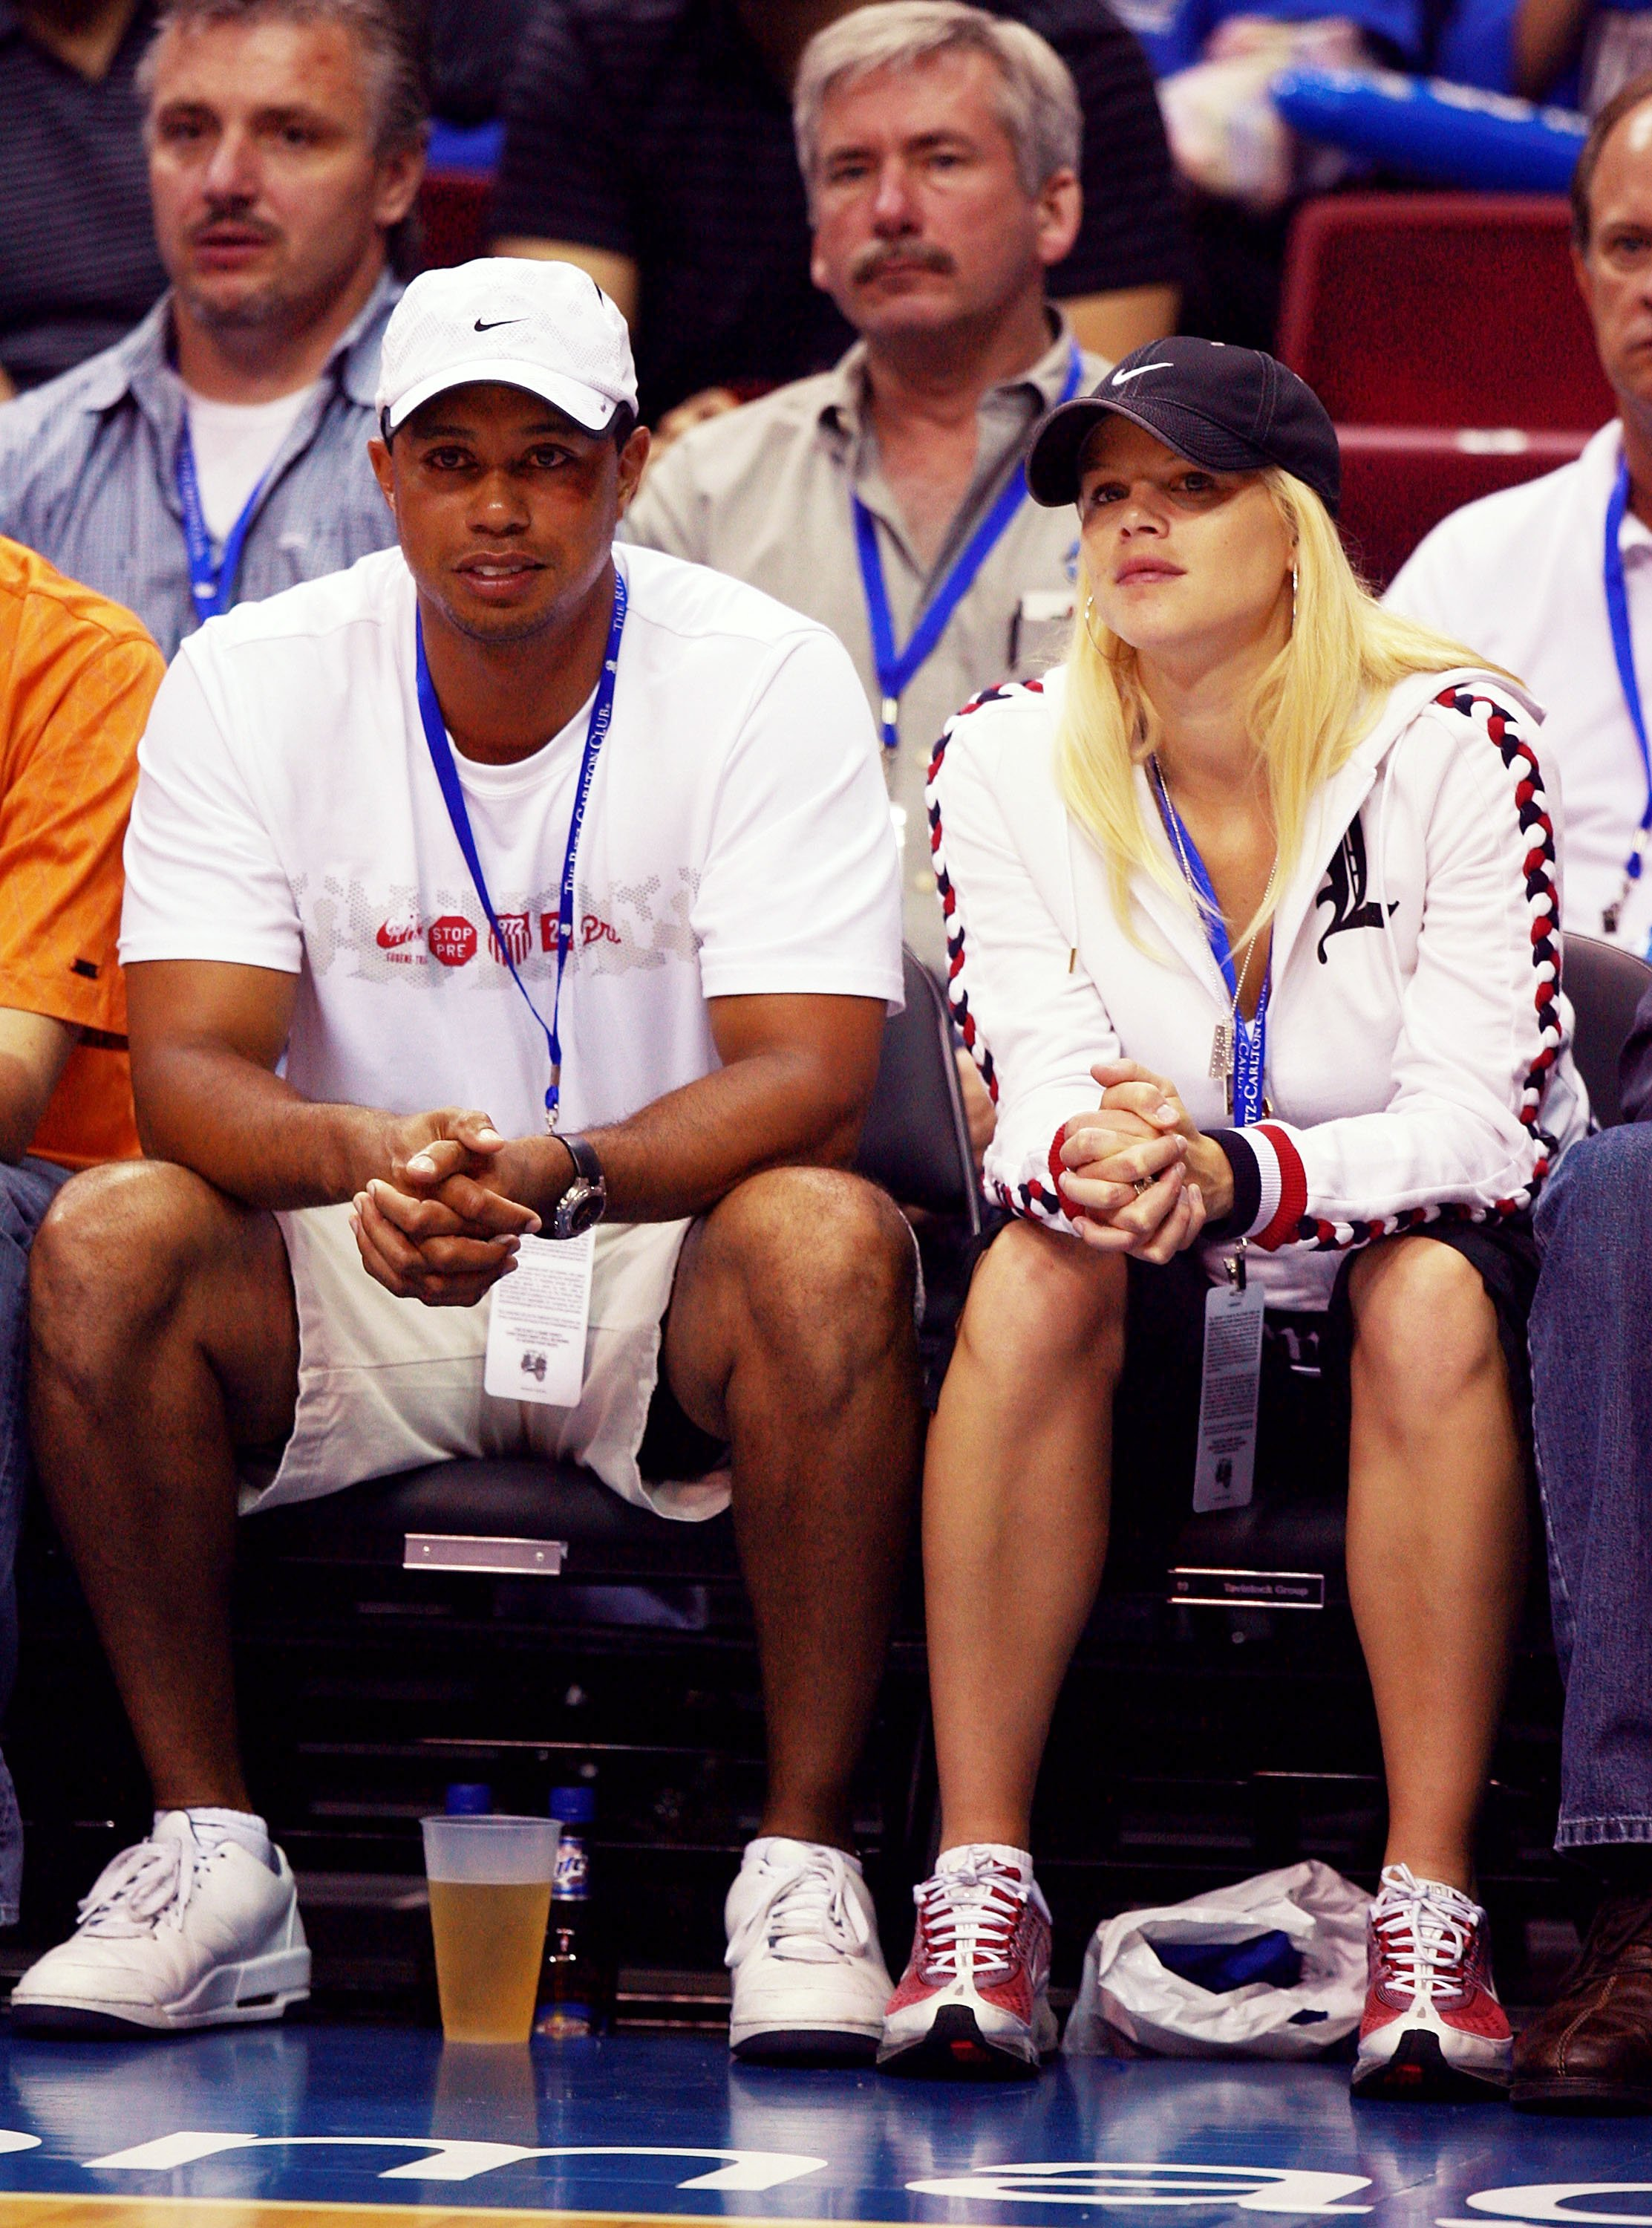 Image Credits: Getty Images / Doug Benc | Golfer Tiger Woods and wife Elin Woods watch the Orlando Magic take on the Detroit Pistons in Game 3 of the Eastern Conference Quarterfinals during the 2007 NBA Playoffs at Amway Arena on April 26, 2007 in Orlando, Florida.